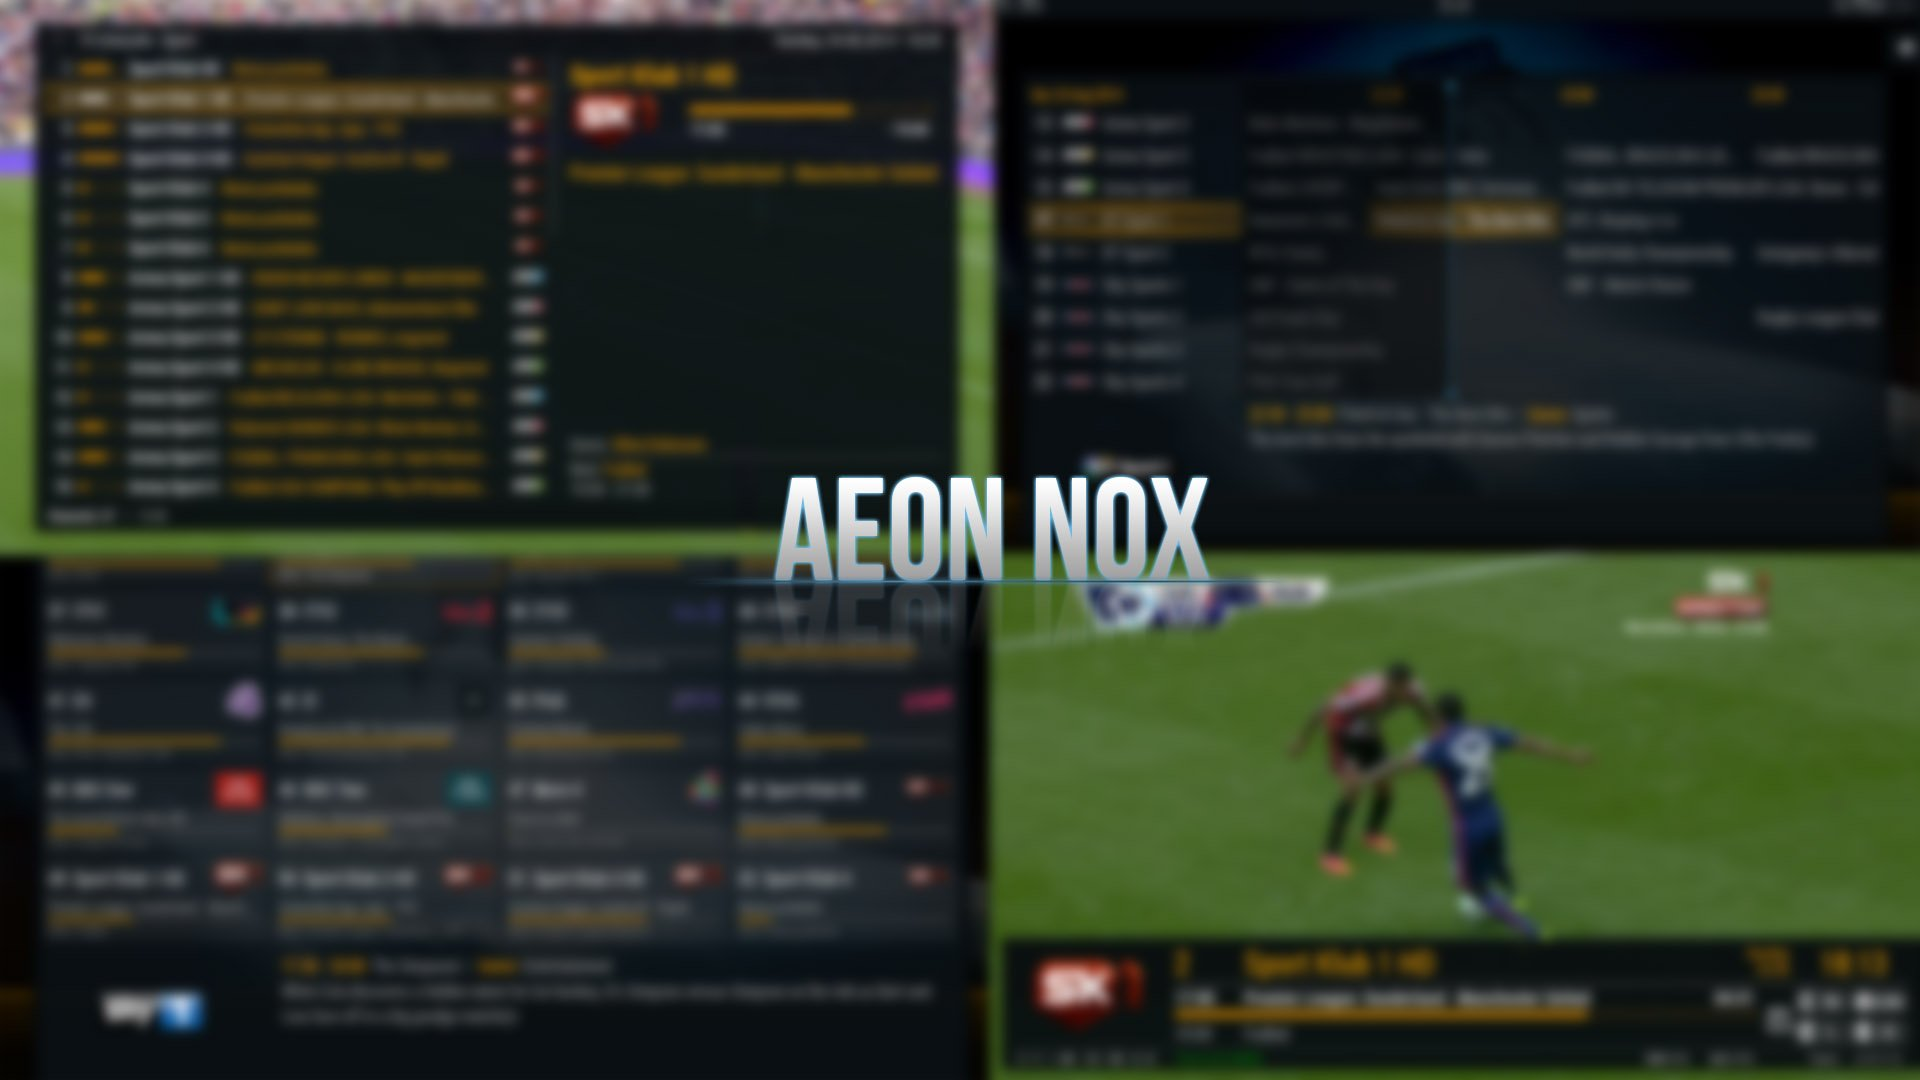 Aeon Nox 5 - Maniac addon for Kodi and XBMC